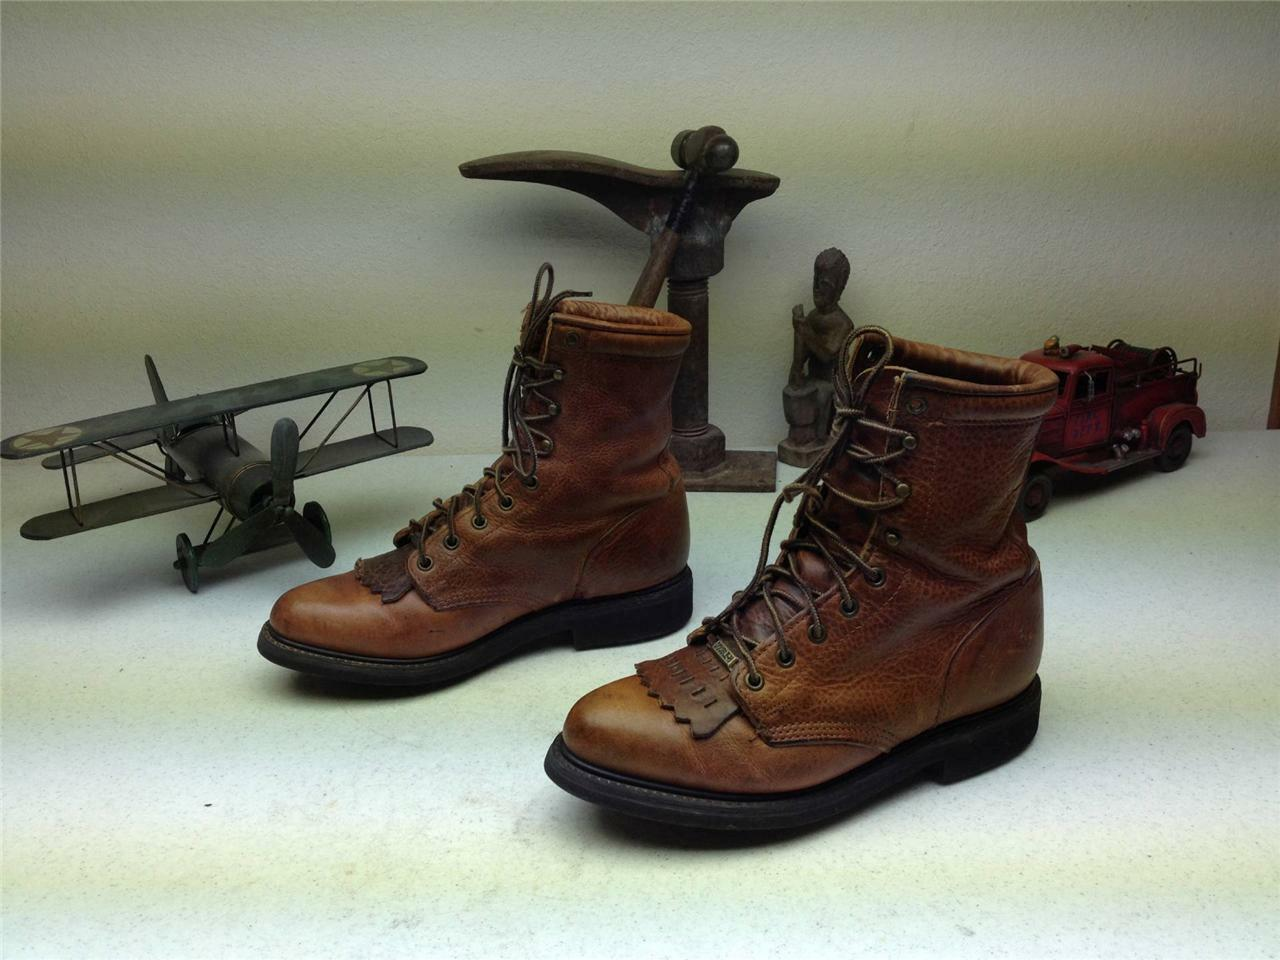 BROWN LEATHER DOUBLE H LACE UP KILTIE MADE IN USA WESTERN COWBOY BOOTS 8D